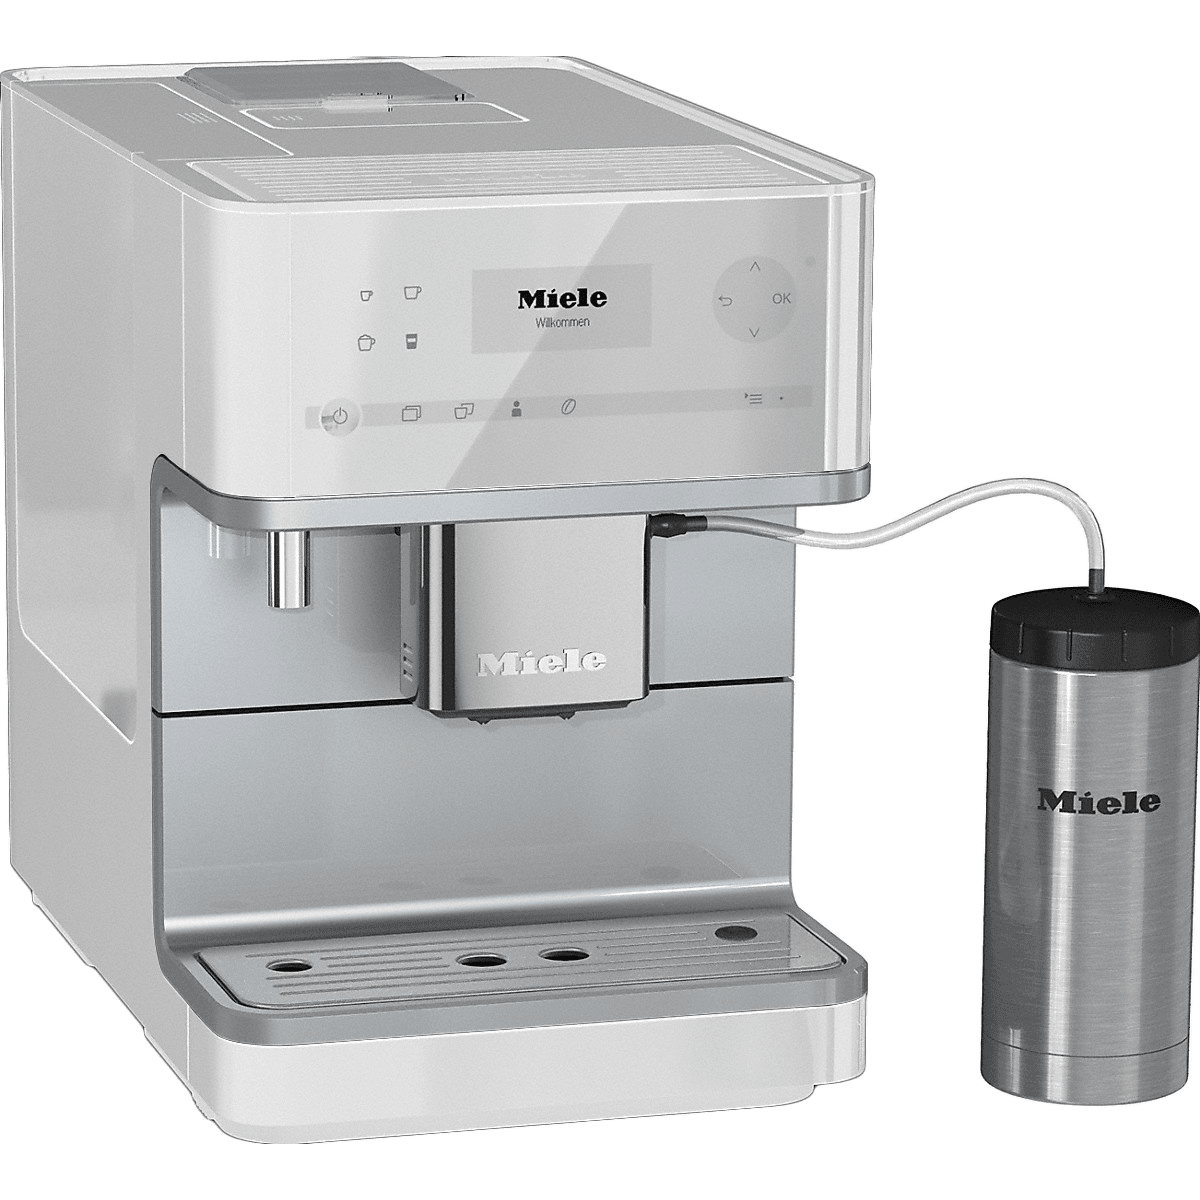 miele coffee maker instructions